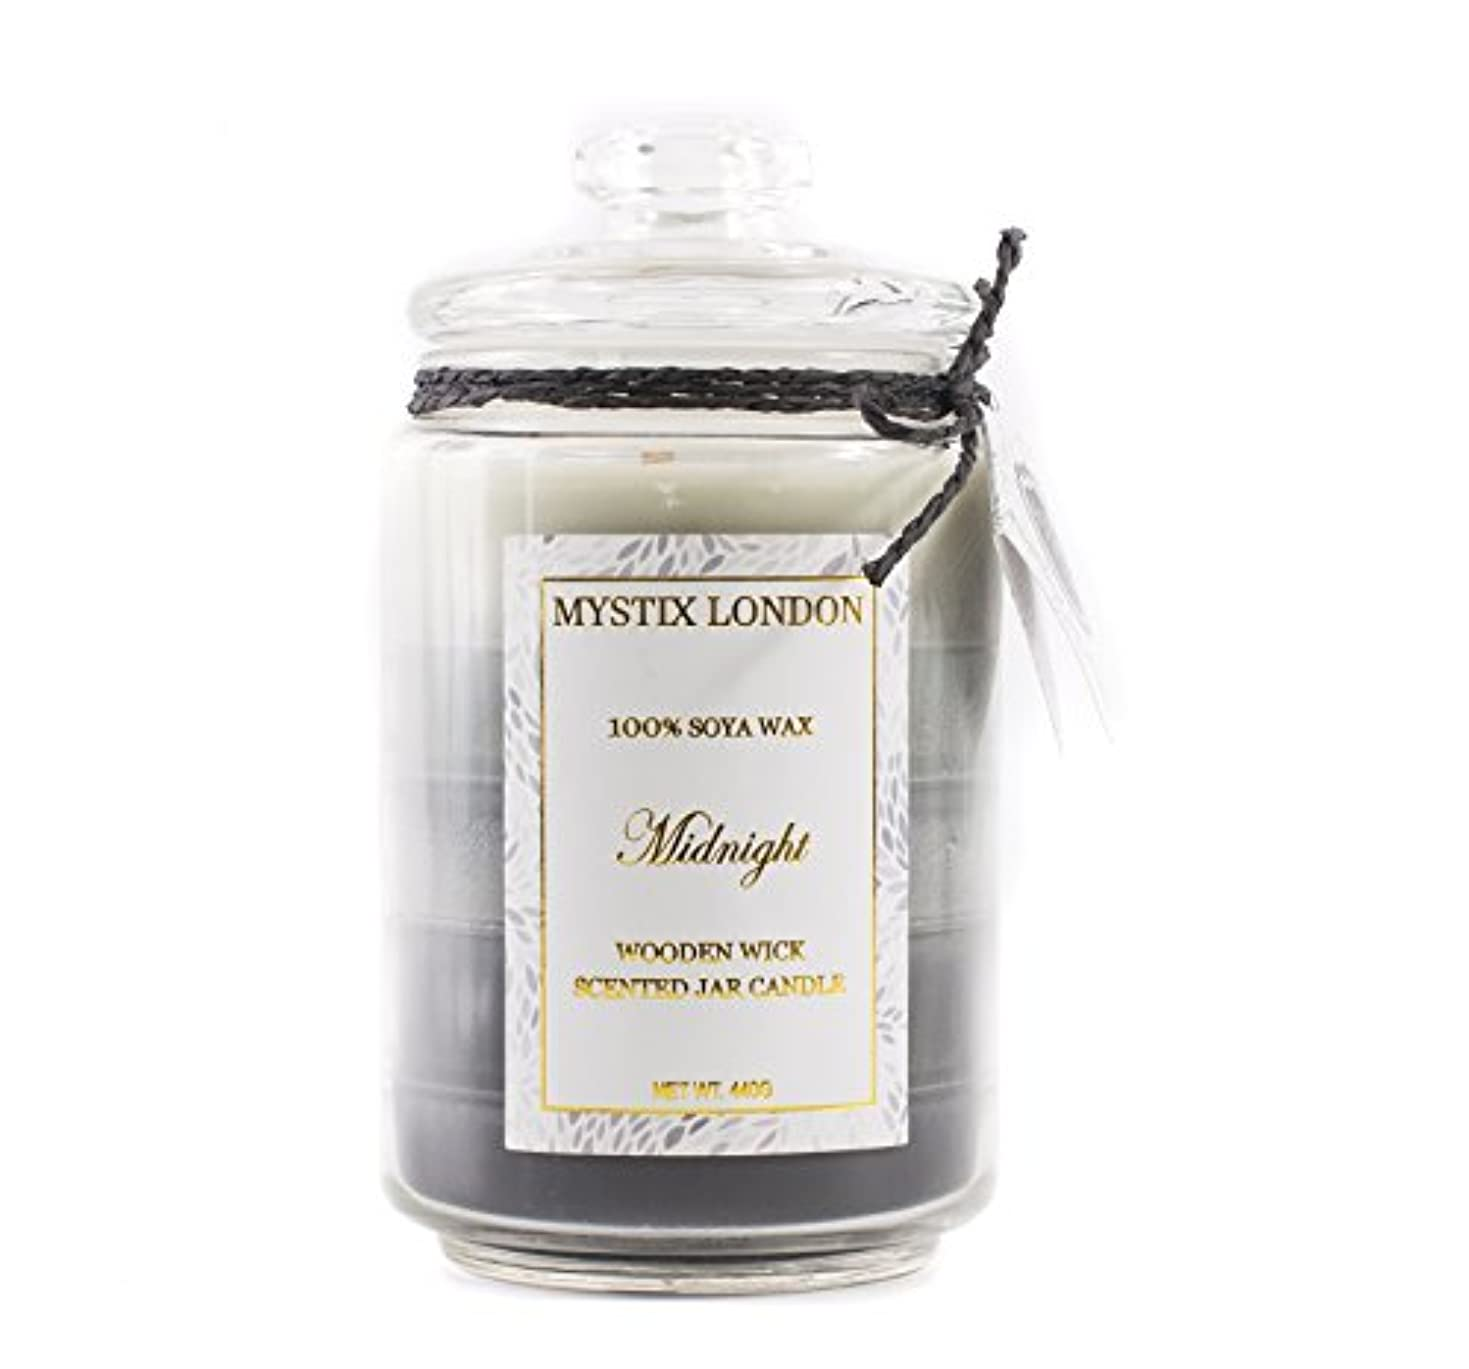 マイナス予定危機Mystix London Midnight Wooden Wick Scented Jar Candle 440g